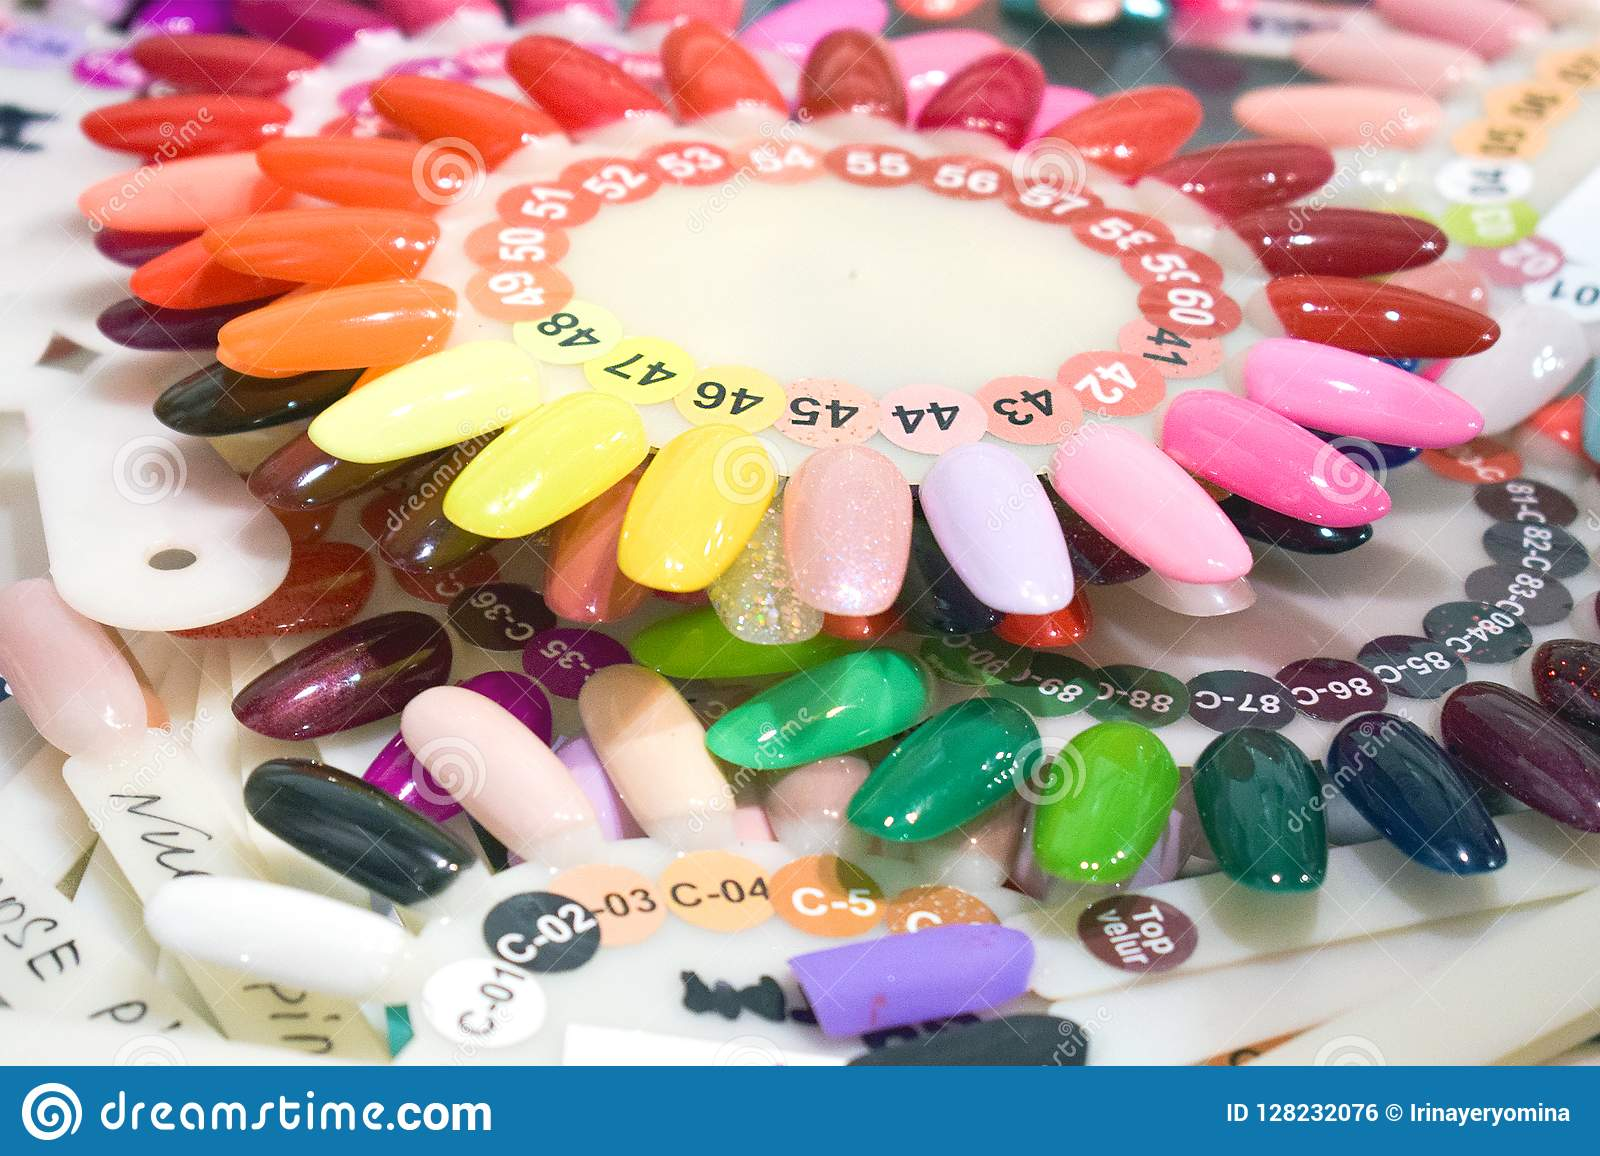 Different Colorful Nails Polish Manicure Palette Background Samples Of Nail Varnishes False Display Nail Art Fan Wheel Polish Pr Stock Photo Image Of Accessory Decorative 128232076